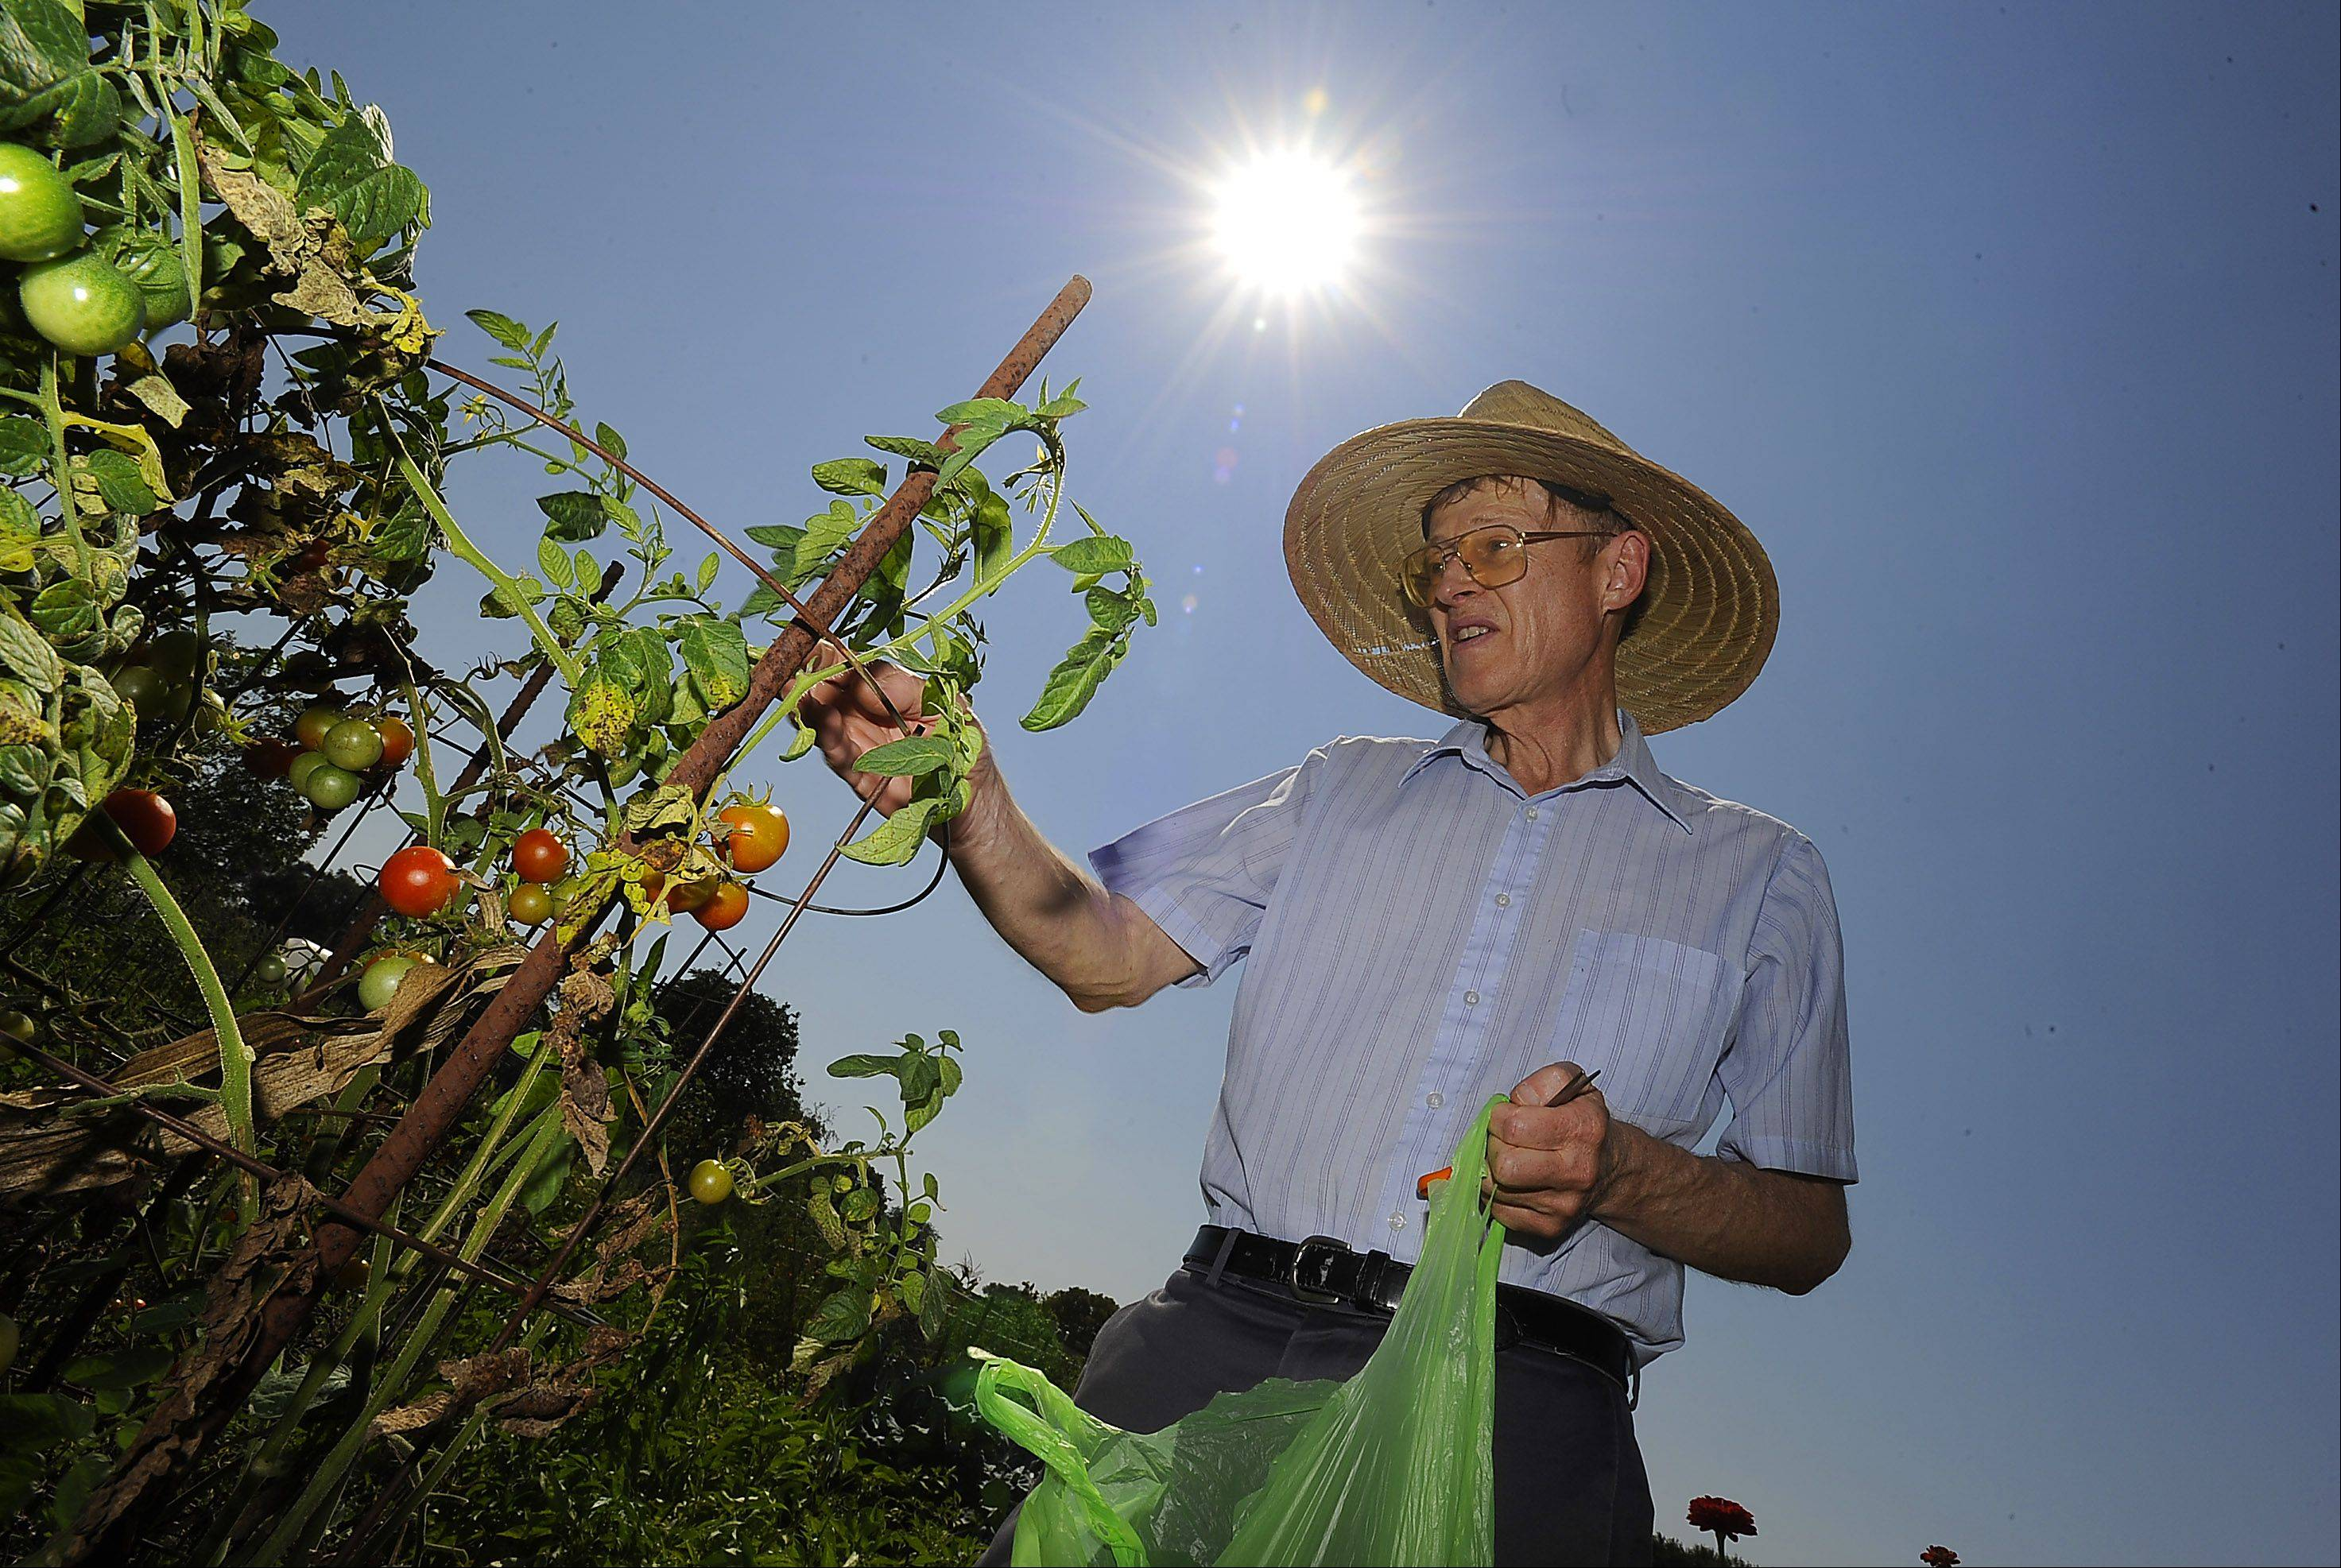 David Sullins of Mount Prospect wore a sun hat to help keep cool in record-tying temperatures Tuesday while he harvested the remaining cherry tomatoes in his garden patch. Temperatures are expected to reach the 90s again Wednesday.